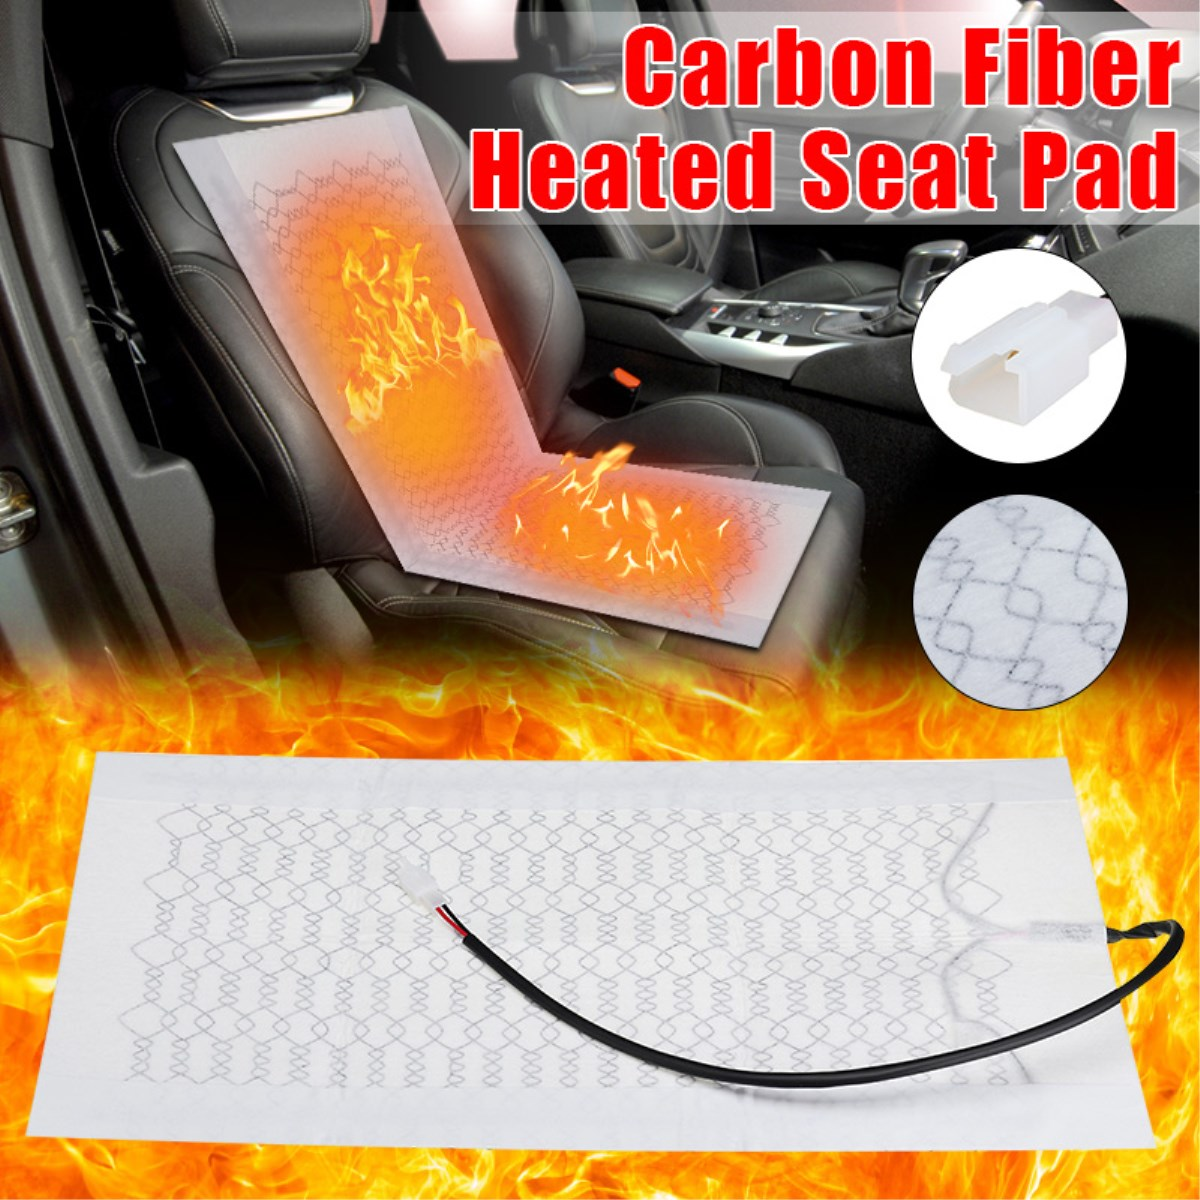 12V Heated Seats Car Seat Cover Heat Pad Carbon Fiber Heated Auto Car Seat Heating Pad for Winter Warmer Vehicle Heater Mat